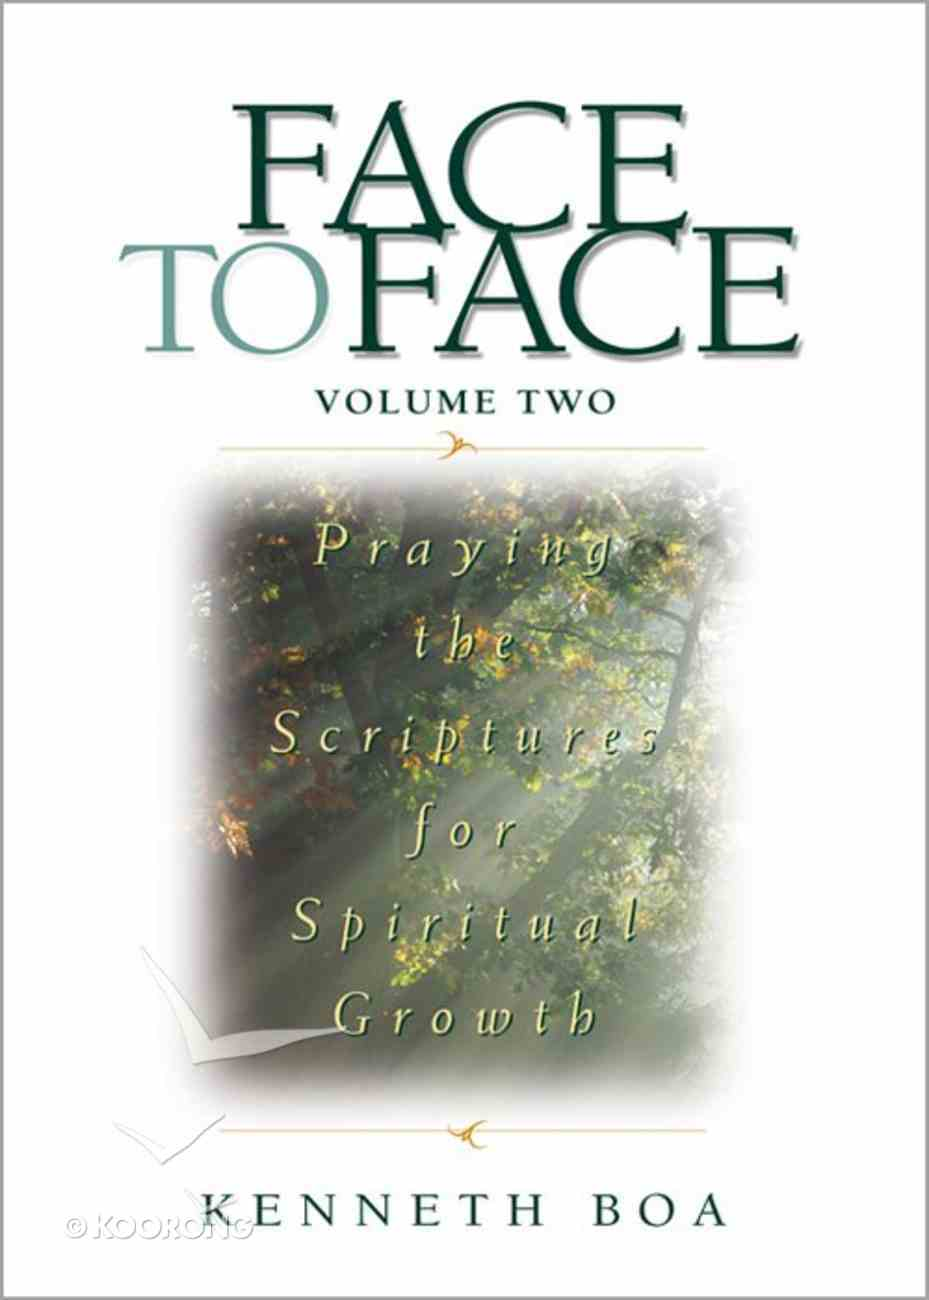 Praying Scriptures For Spiritual Growth (Volume 2) (#2 in Face To Face Series) eBook